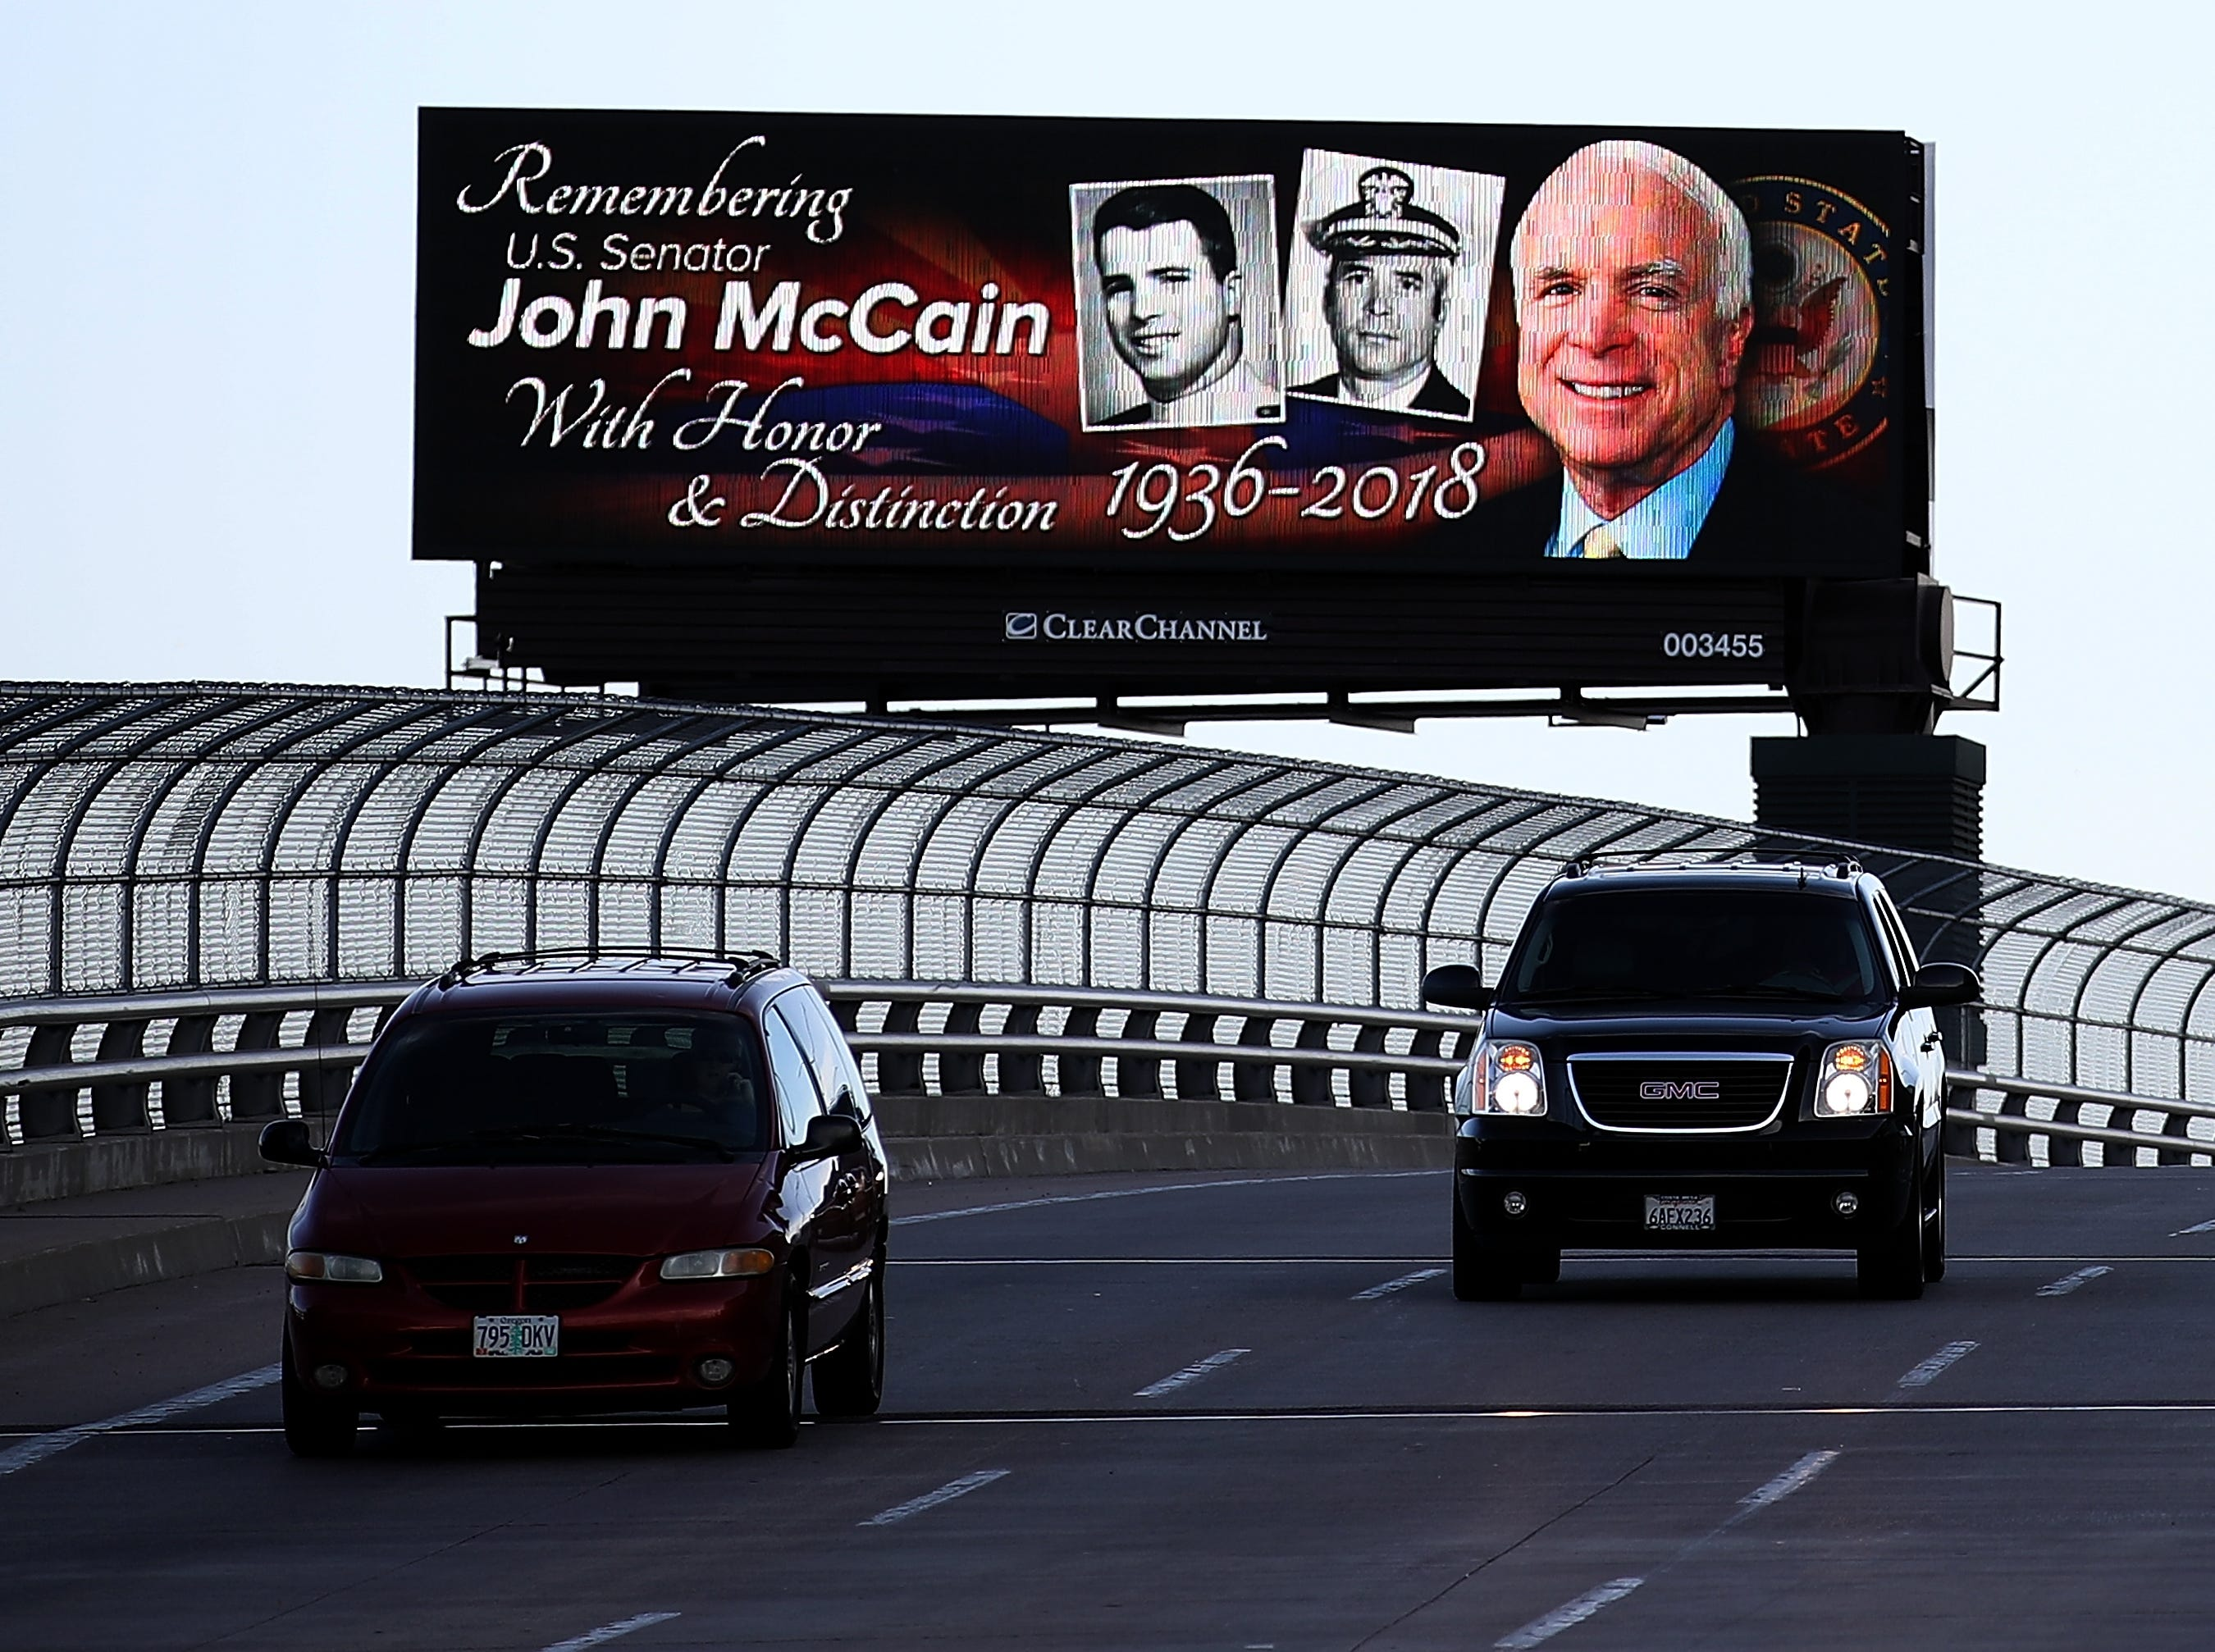 Cars drive by a billboard with a message honoring U.S. Sen. John McCain on Aug. 27, 2018 in Phoenix, Ariz.